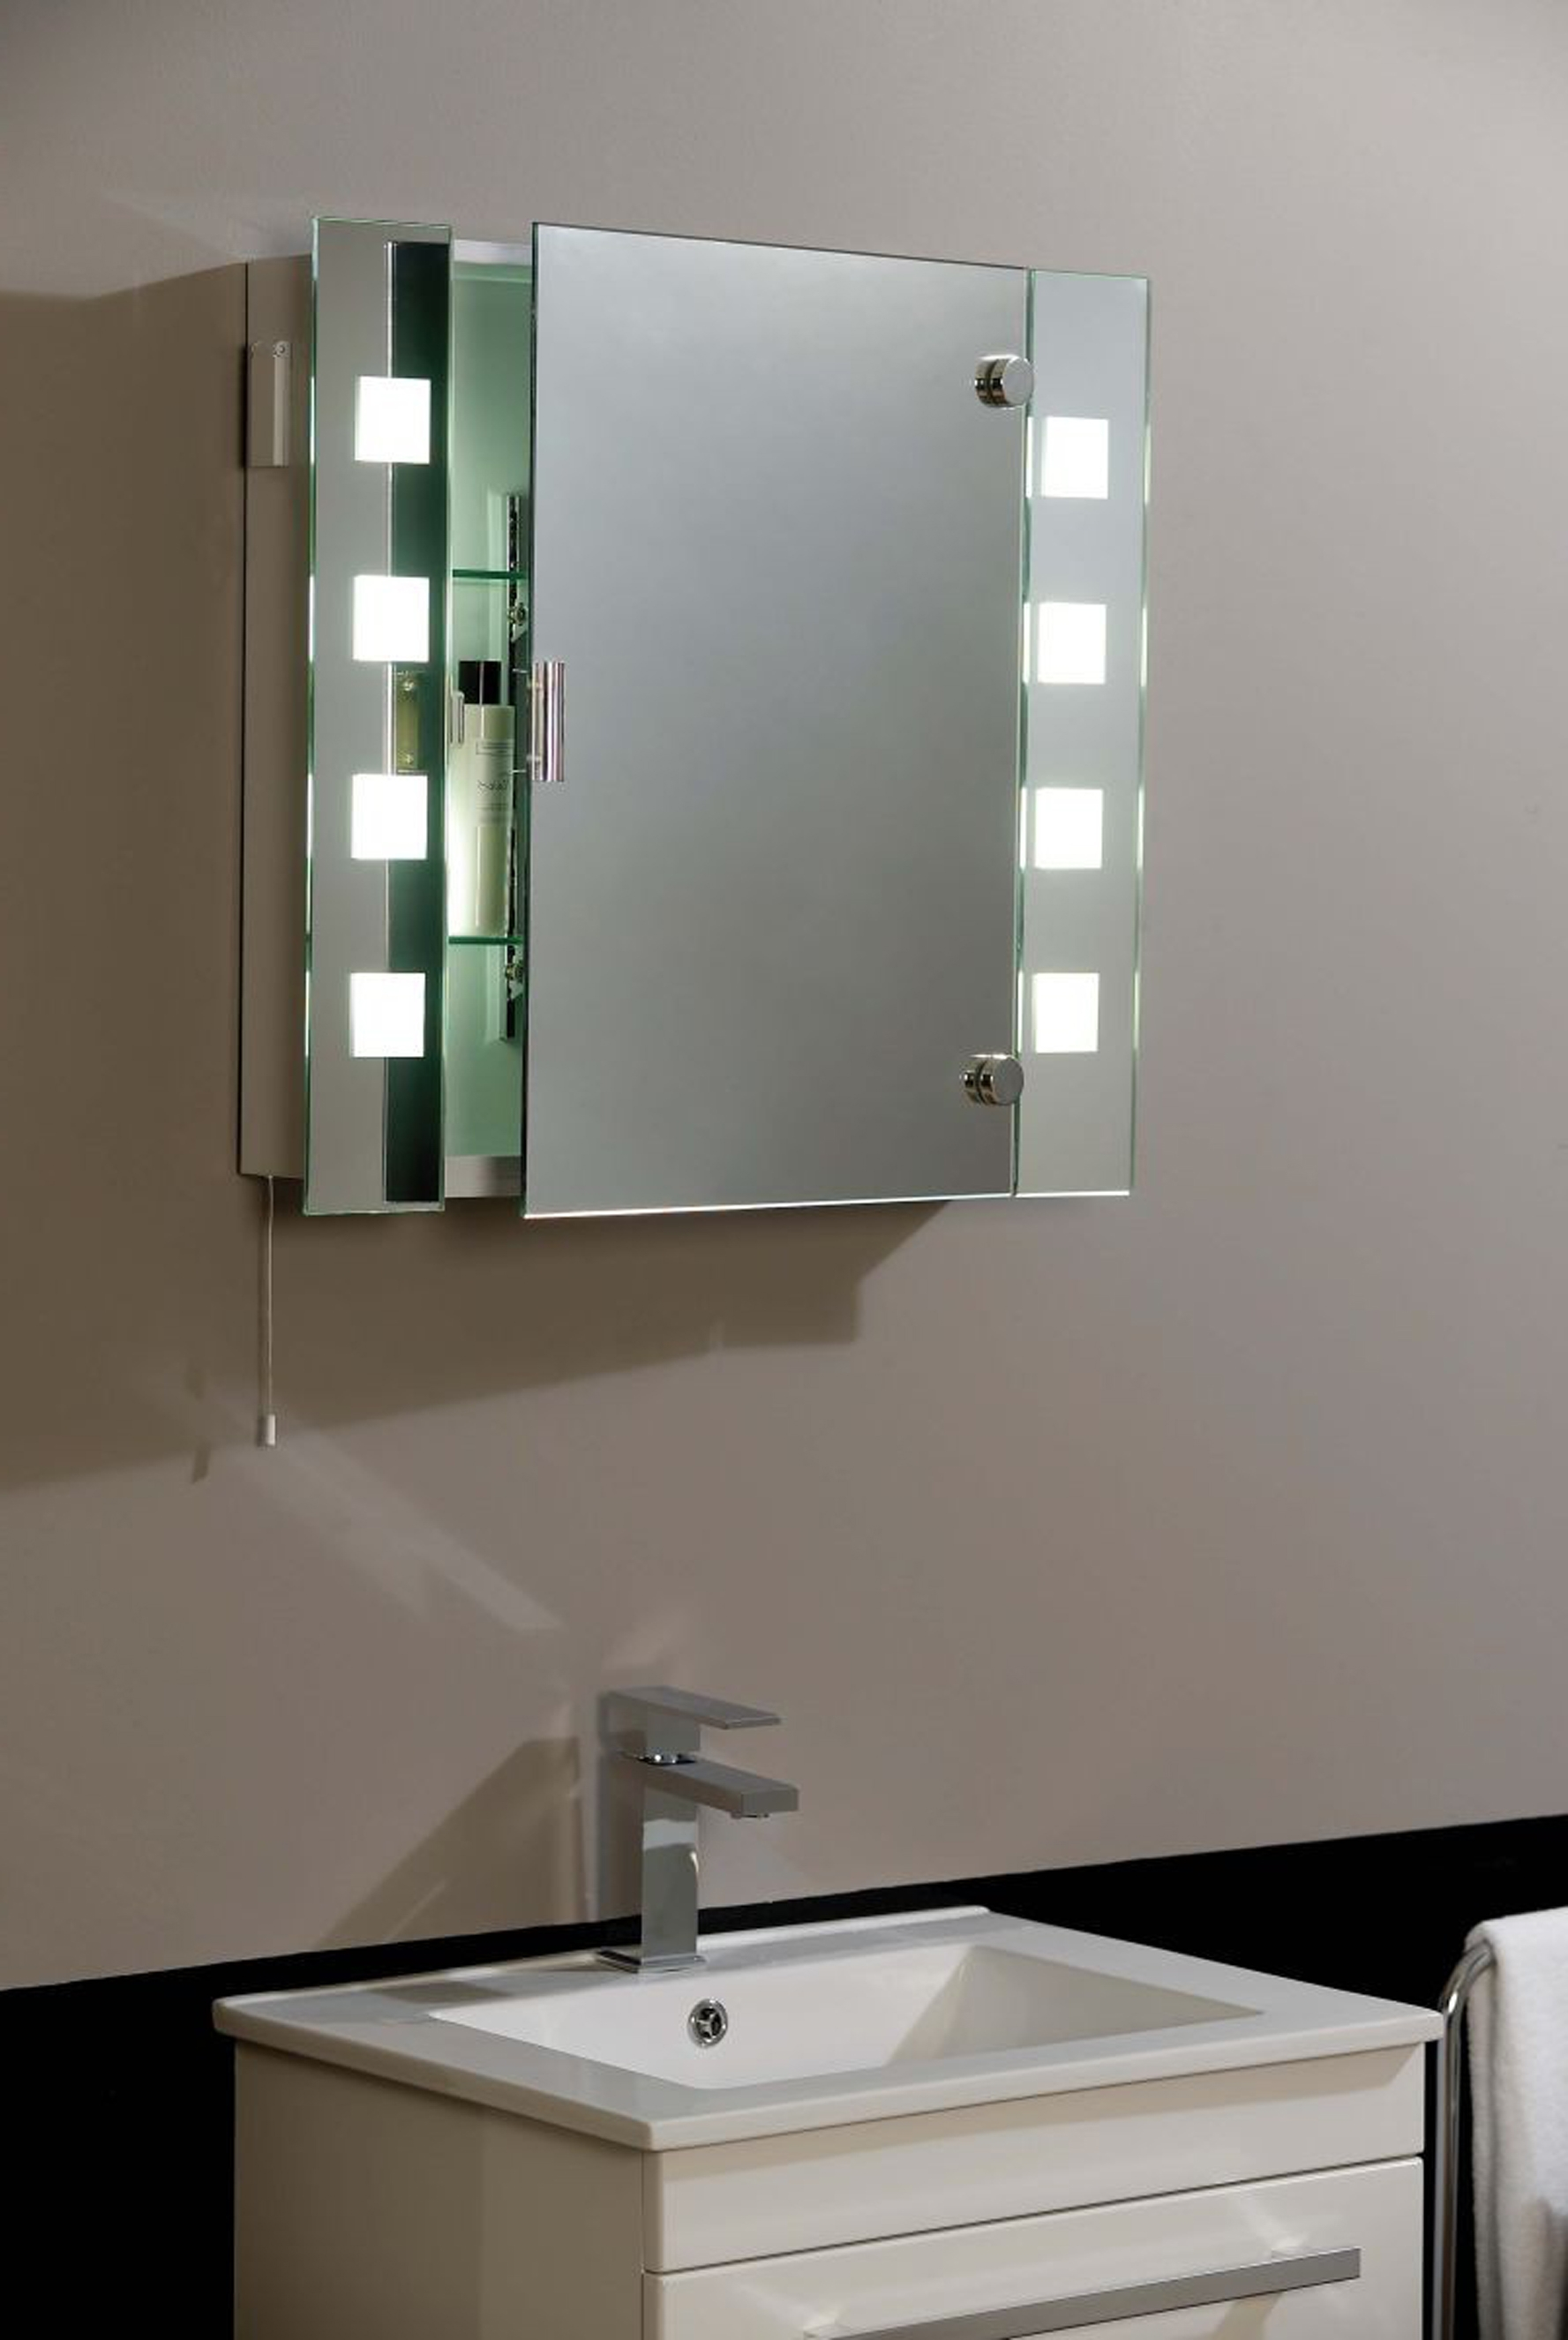 Bathroom Medicine Cabinet Mirror With Lights